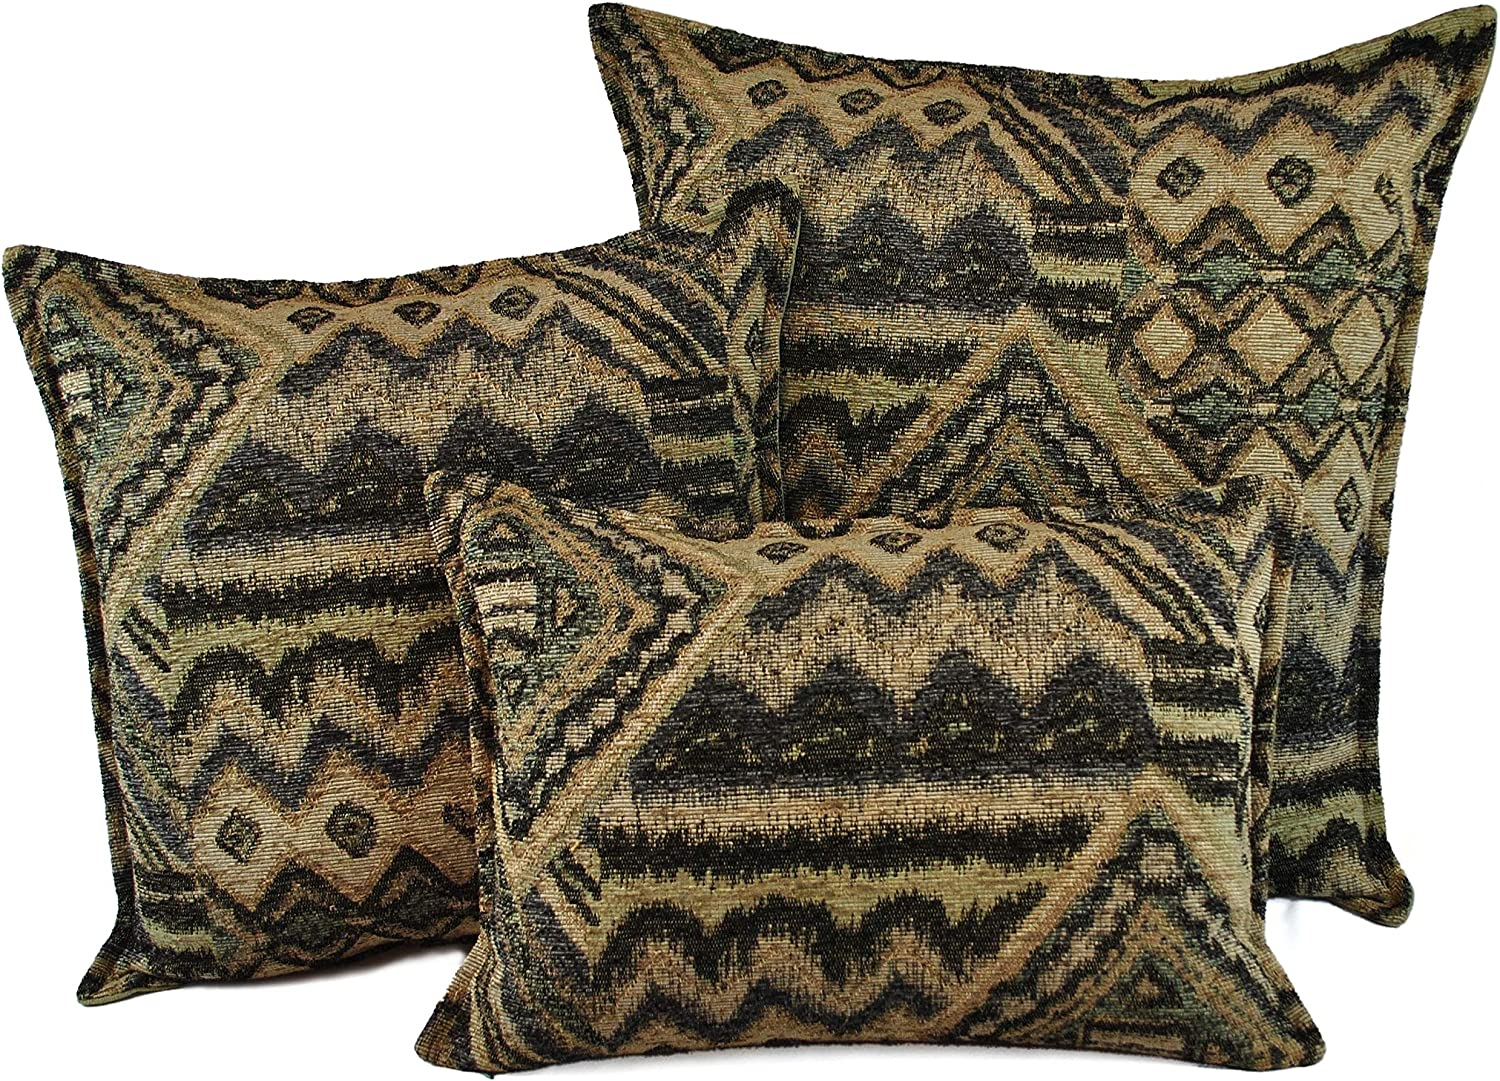 Down Filled Throw Pillows Set of Color Tradi Free shipping on posting reviews Today's only 3 Geometric Multi